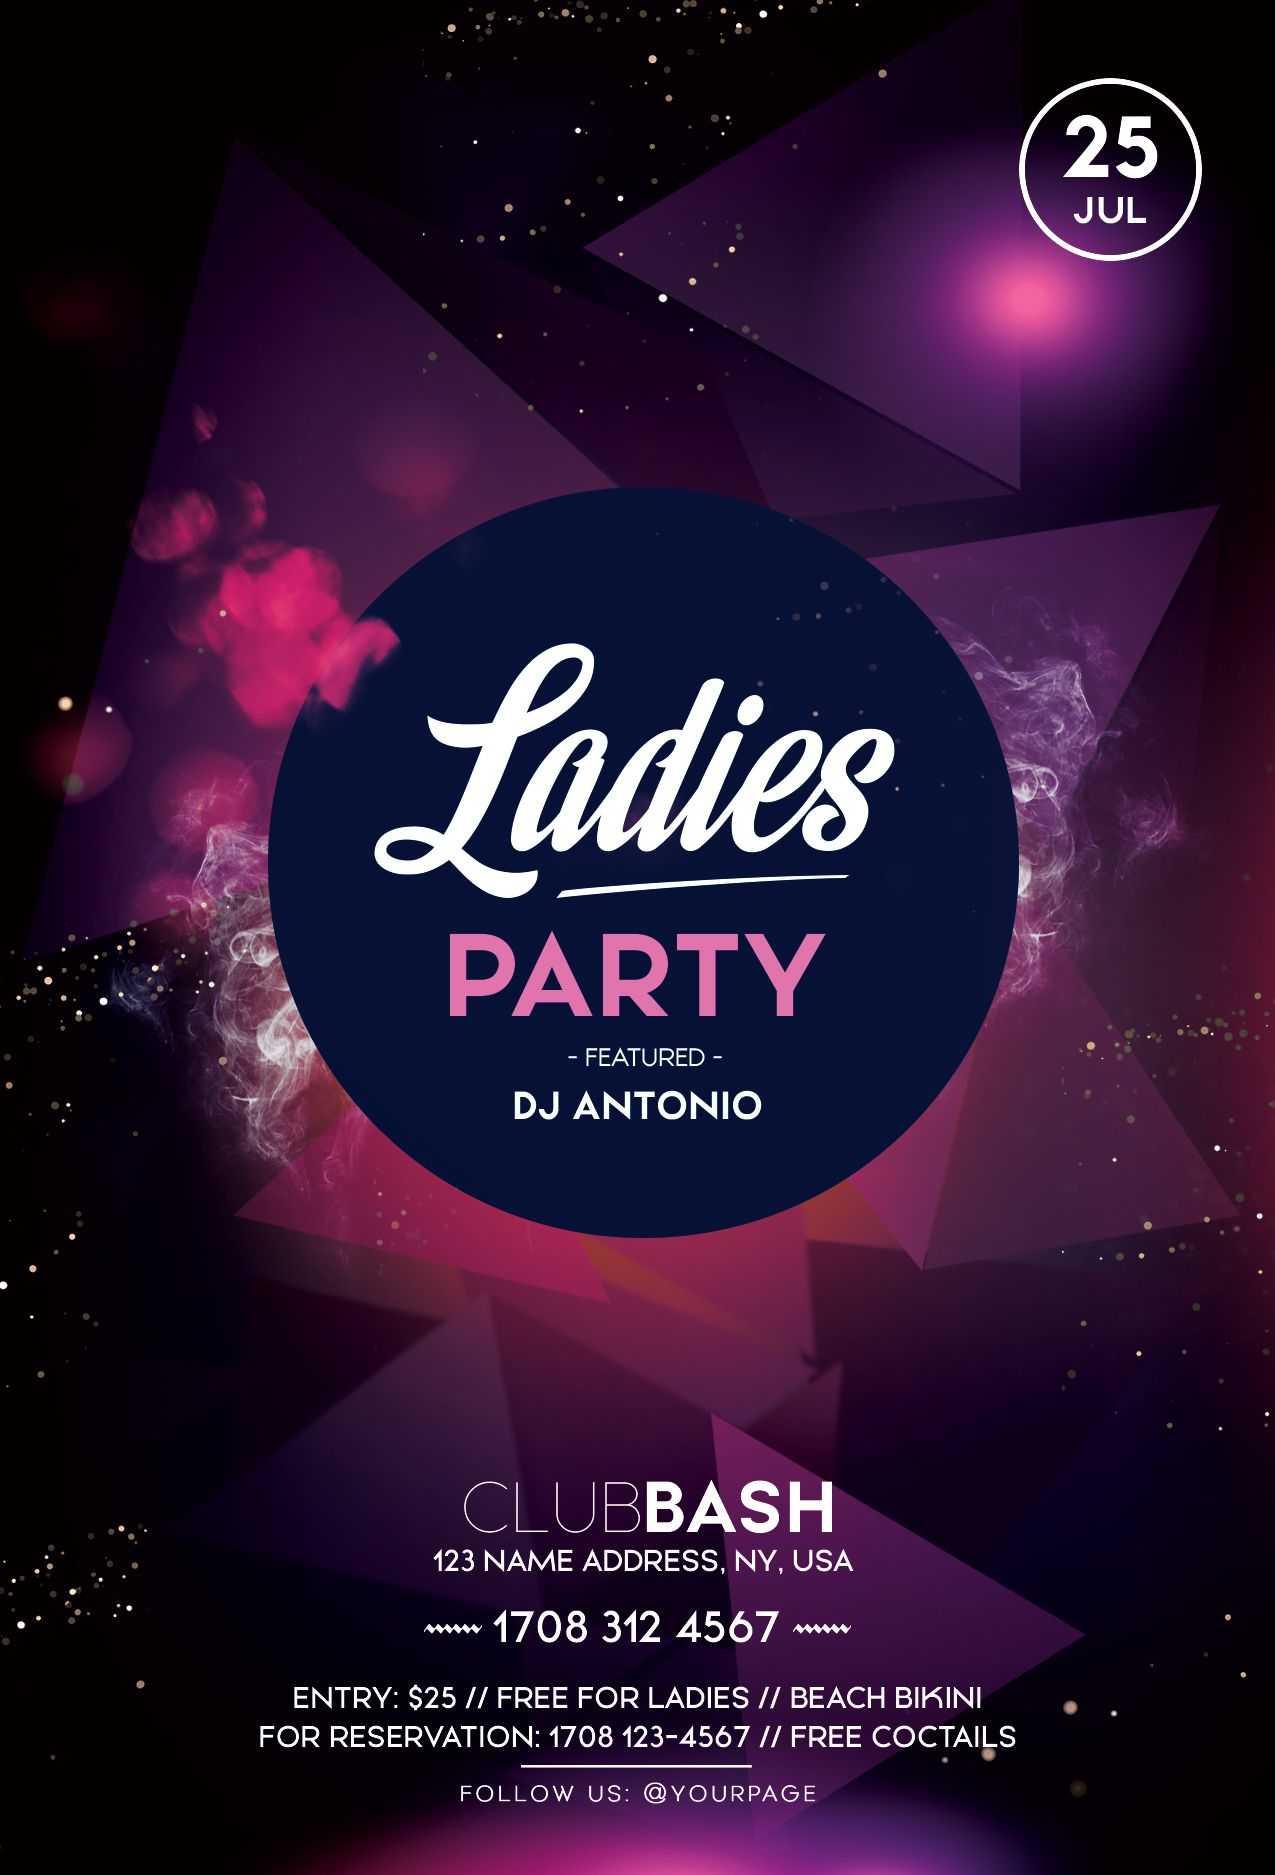 Ladies Party Psd Free Flyer Template Pixelsdesign Free Psd Flyer Templates Free Psd Flyer Free Flyer Templates